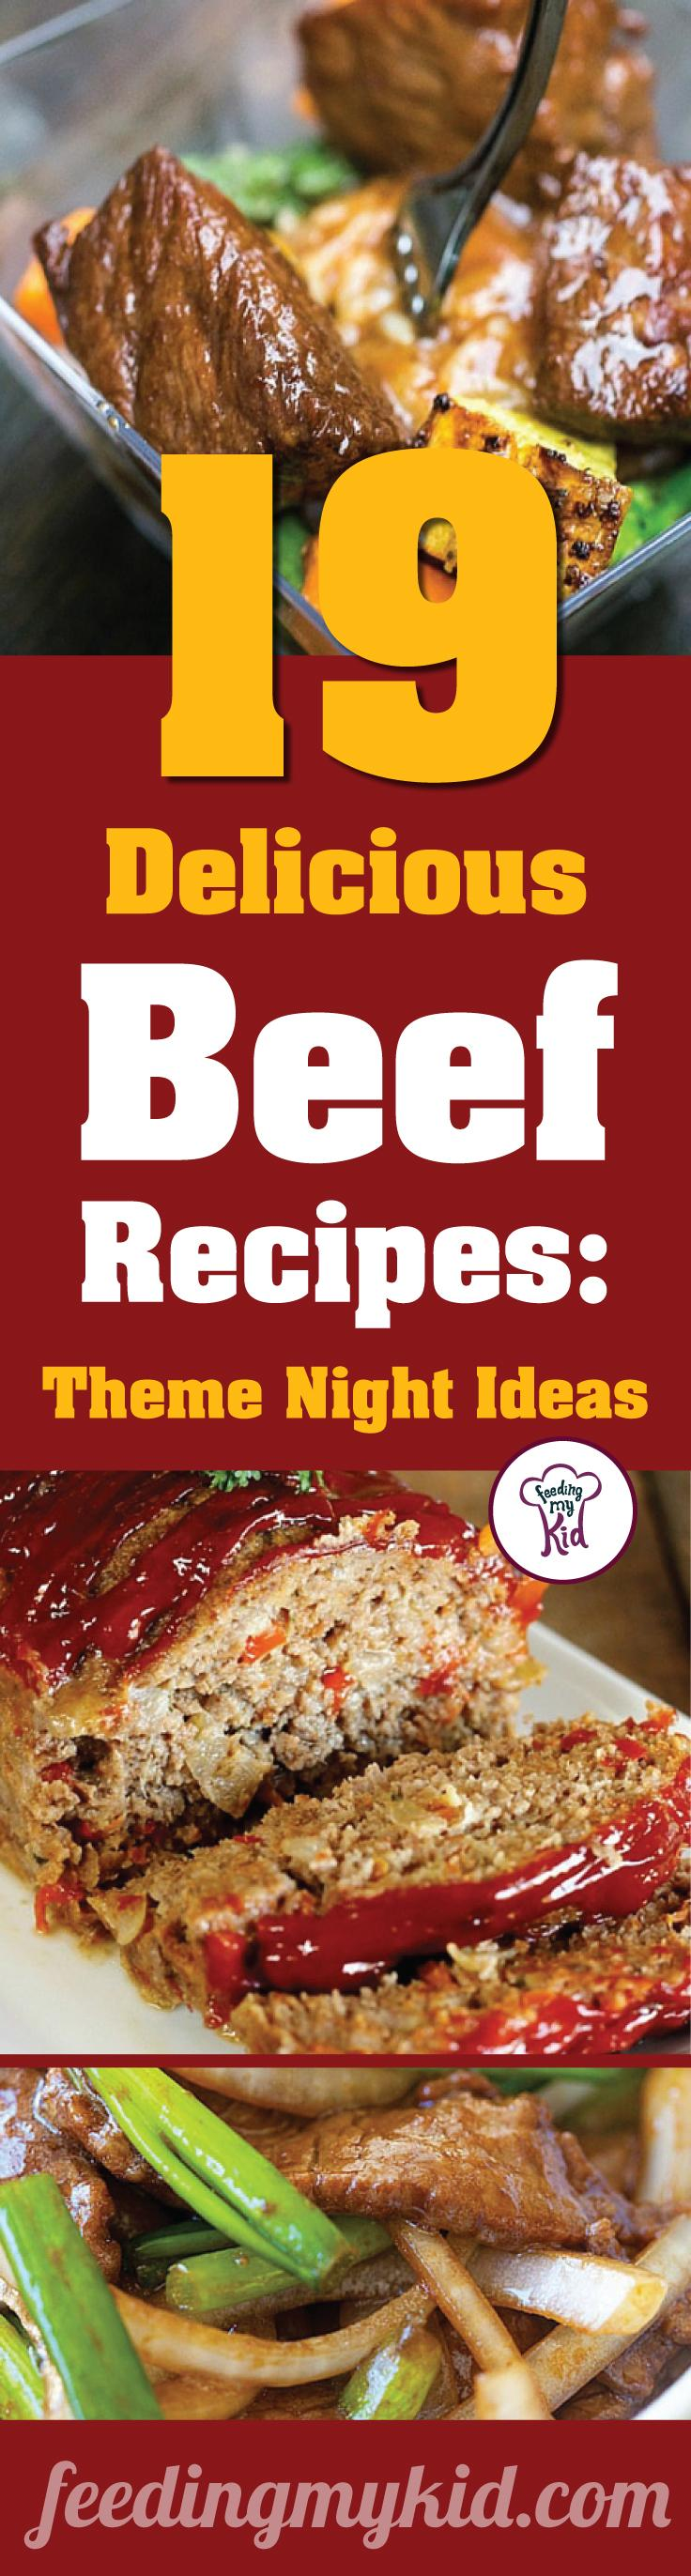 You'll want to share this! These beef recipes are warm and delicious and will make the perfect dinner for any occasion. Feeding My Kid is a great website for parents, filled with all the information you need about how to raise your kids, from healthy tips to nutritious recipes. #dinner #themenight